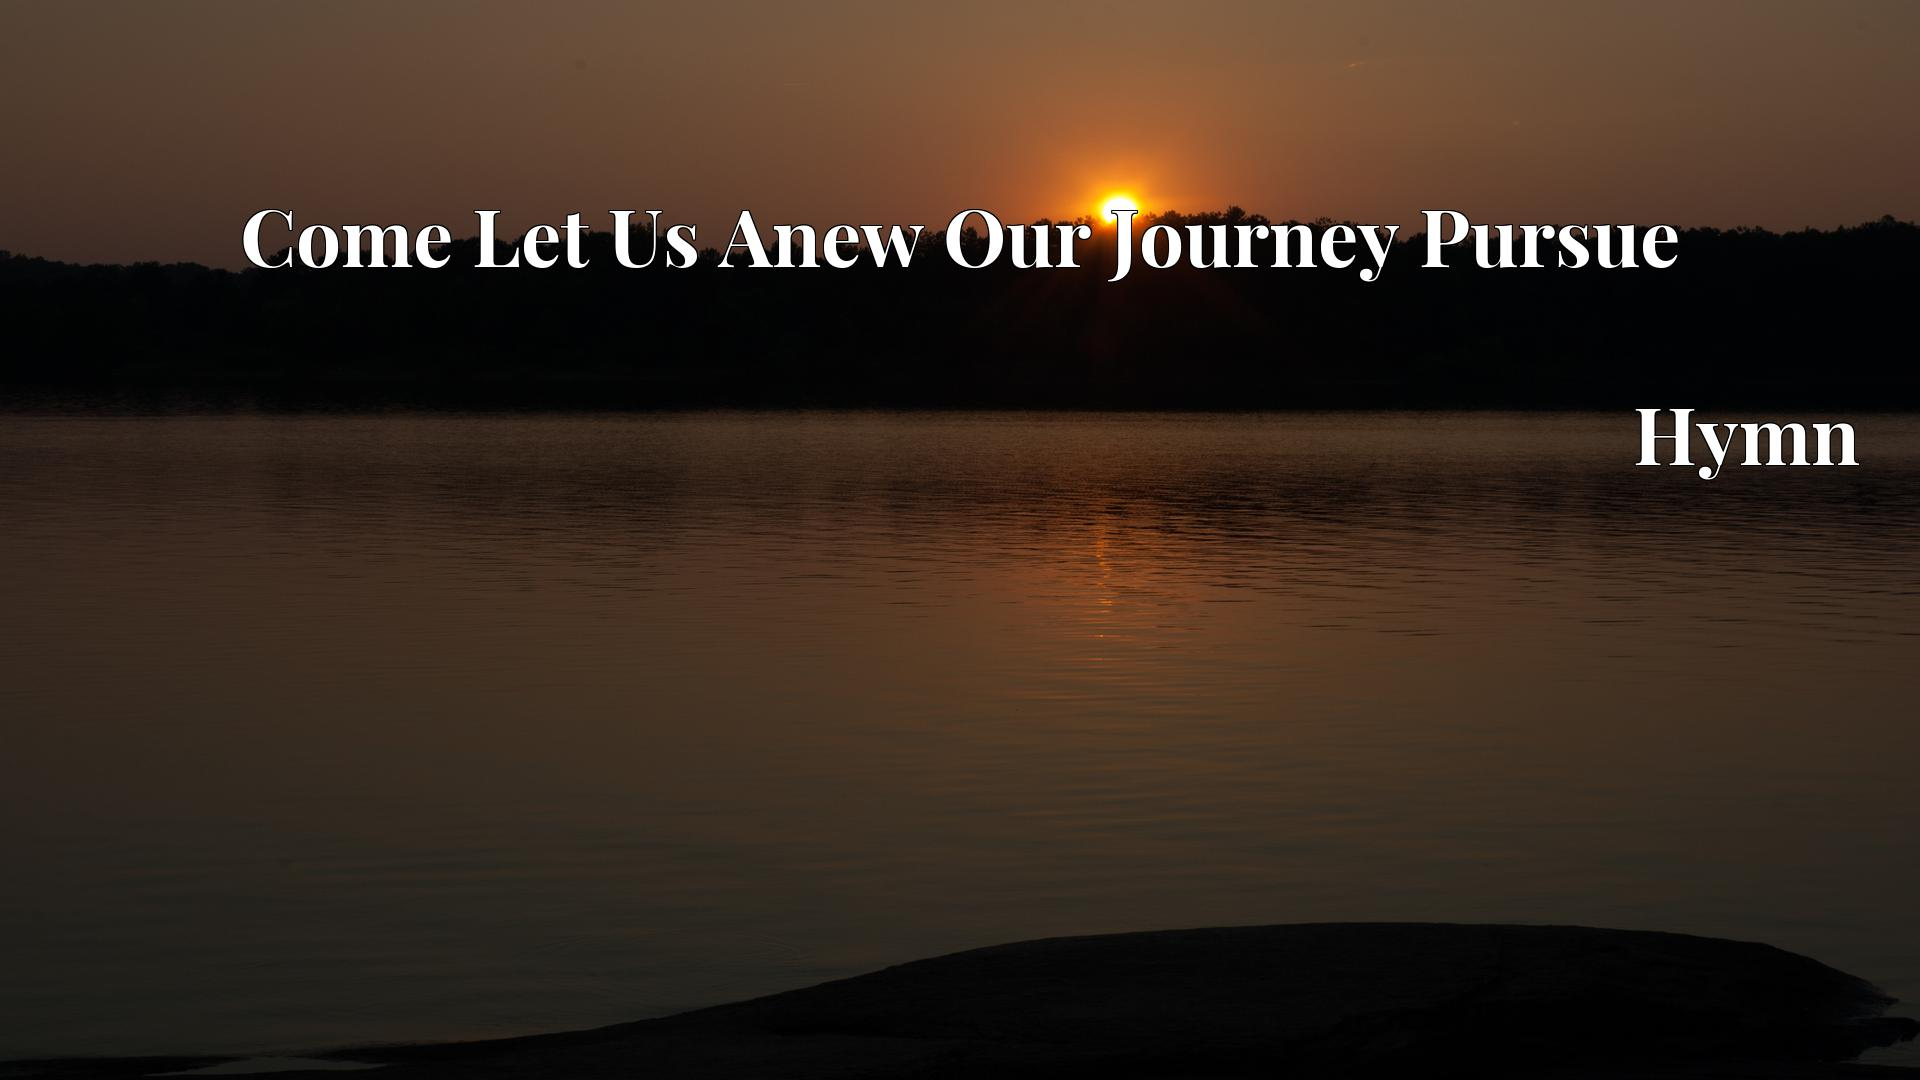 Come Let Us Anew Our Journey Pursue - Hymn